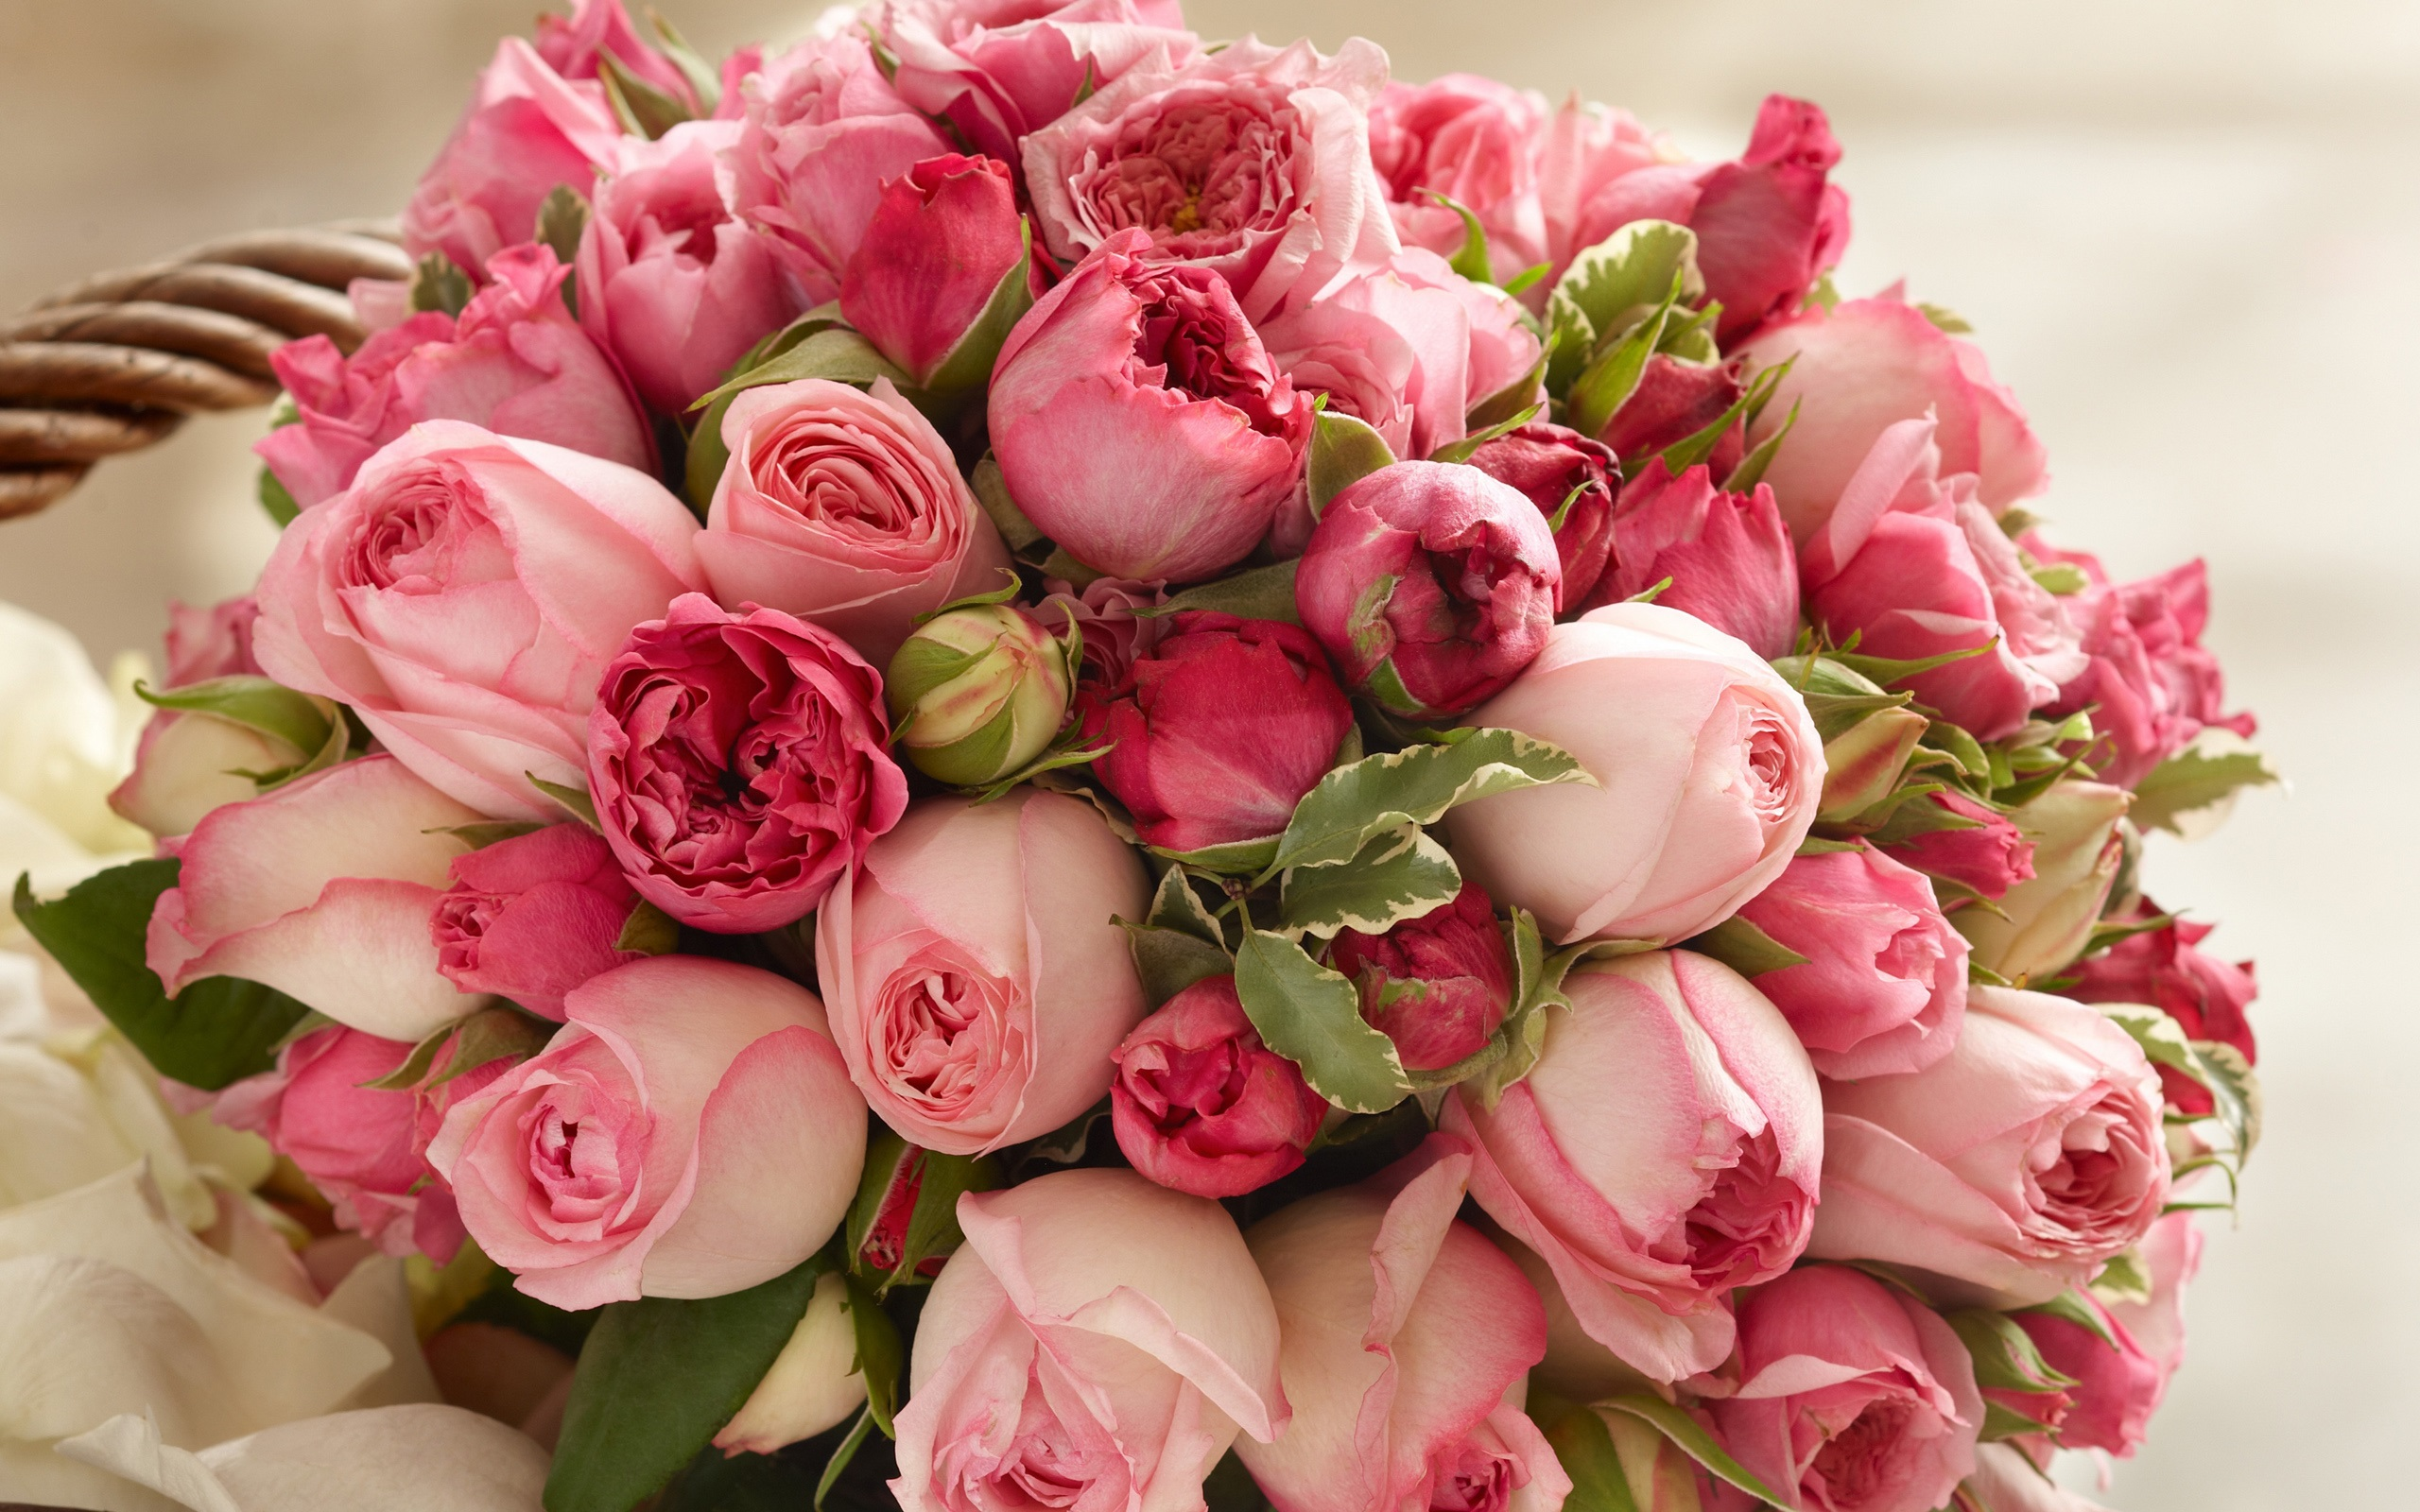 Wallpaper Pink rose flowers, beautiful bouquet 2560x1920 HD Picture ...